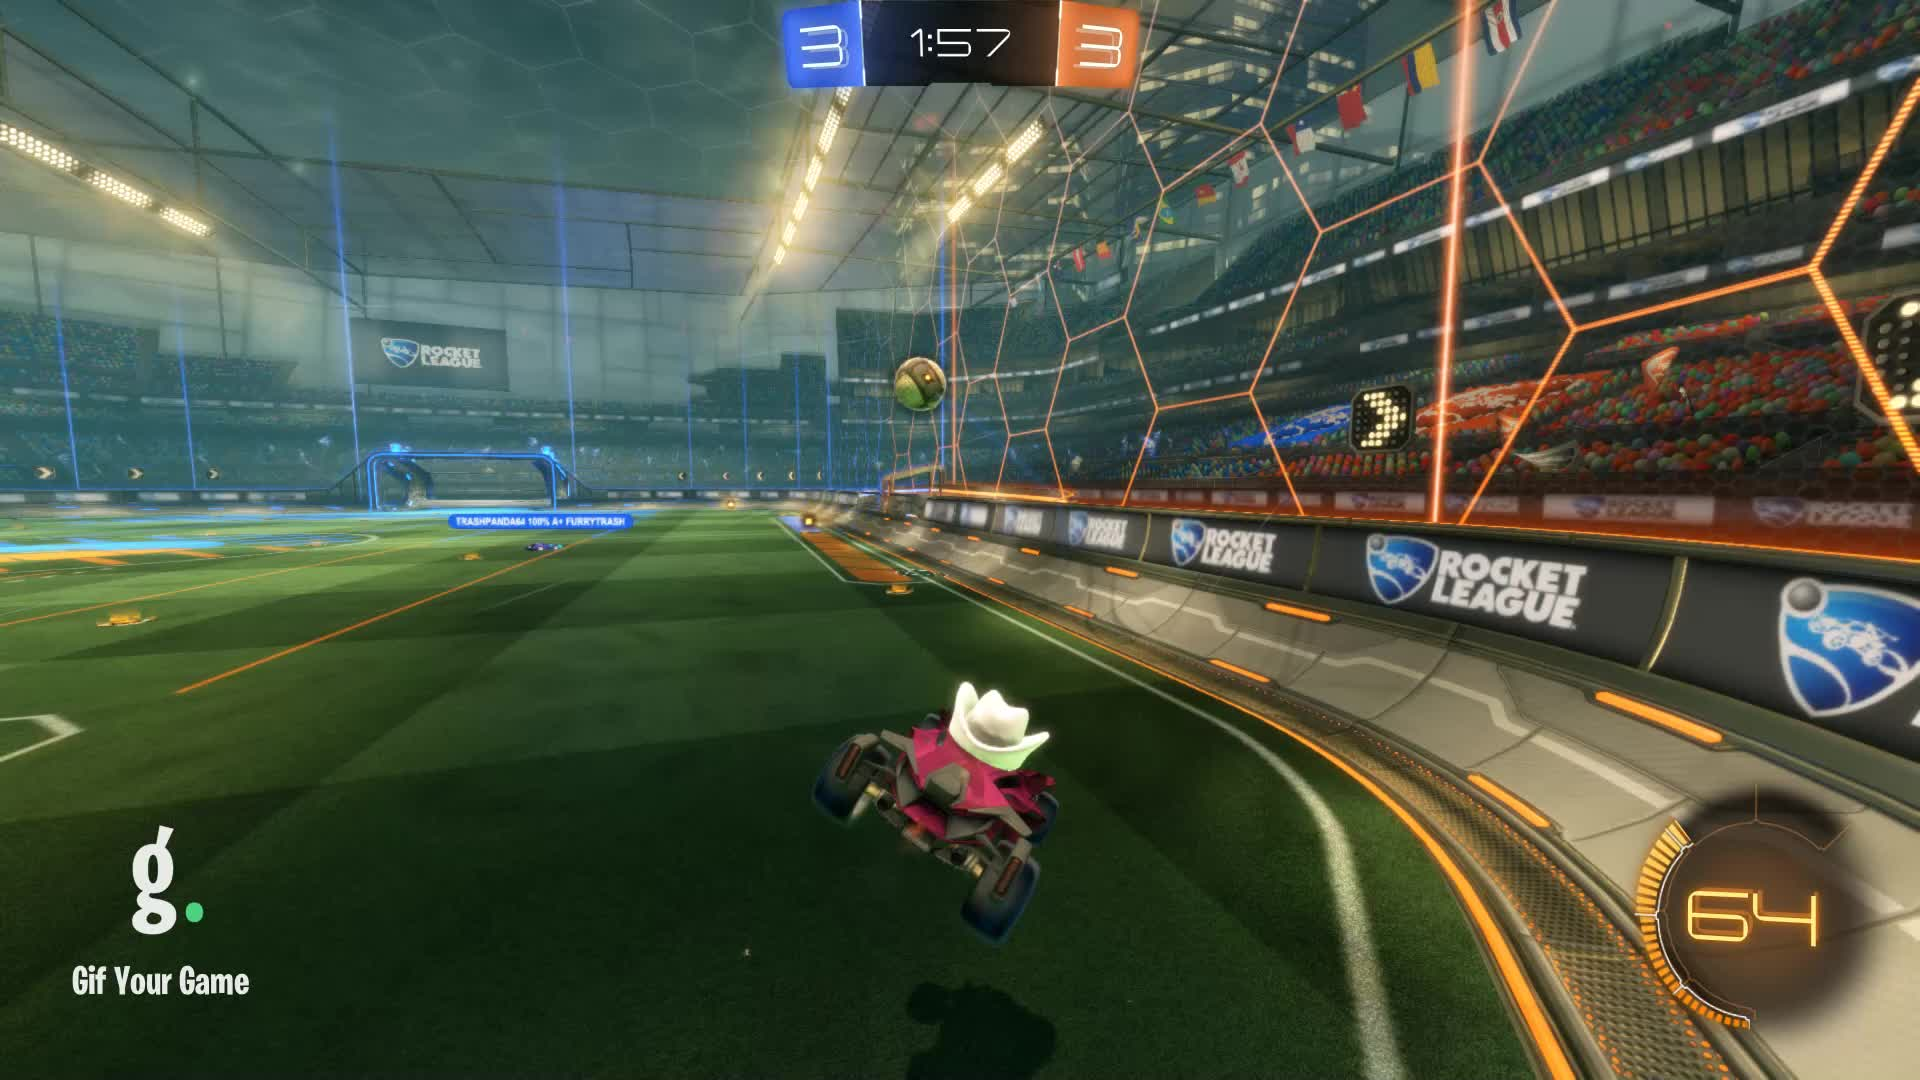 Gif Your Game, GifYourGame, Goal, Rocket League, RocketLeague, Wisconsin, Goal 7: Wisconsin GIFs